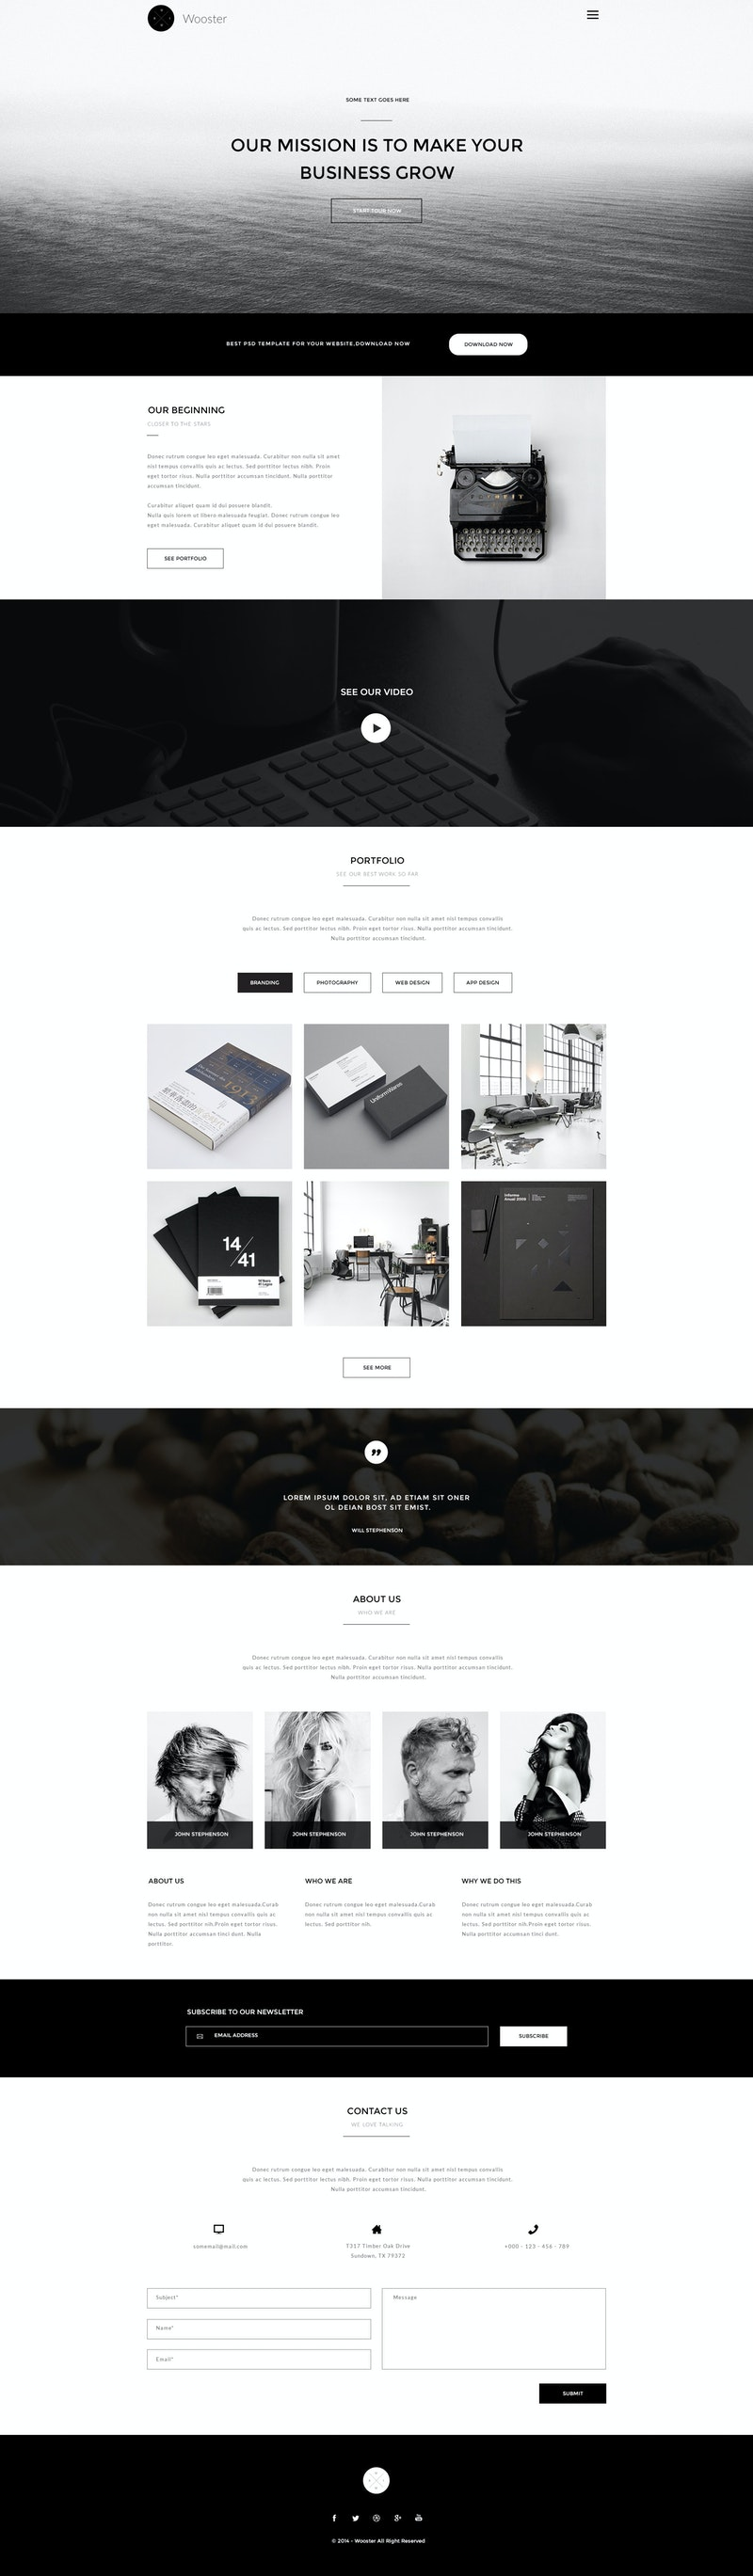 Wooster - Free Bootstrap Onepage Theme preview